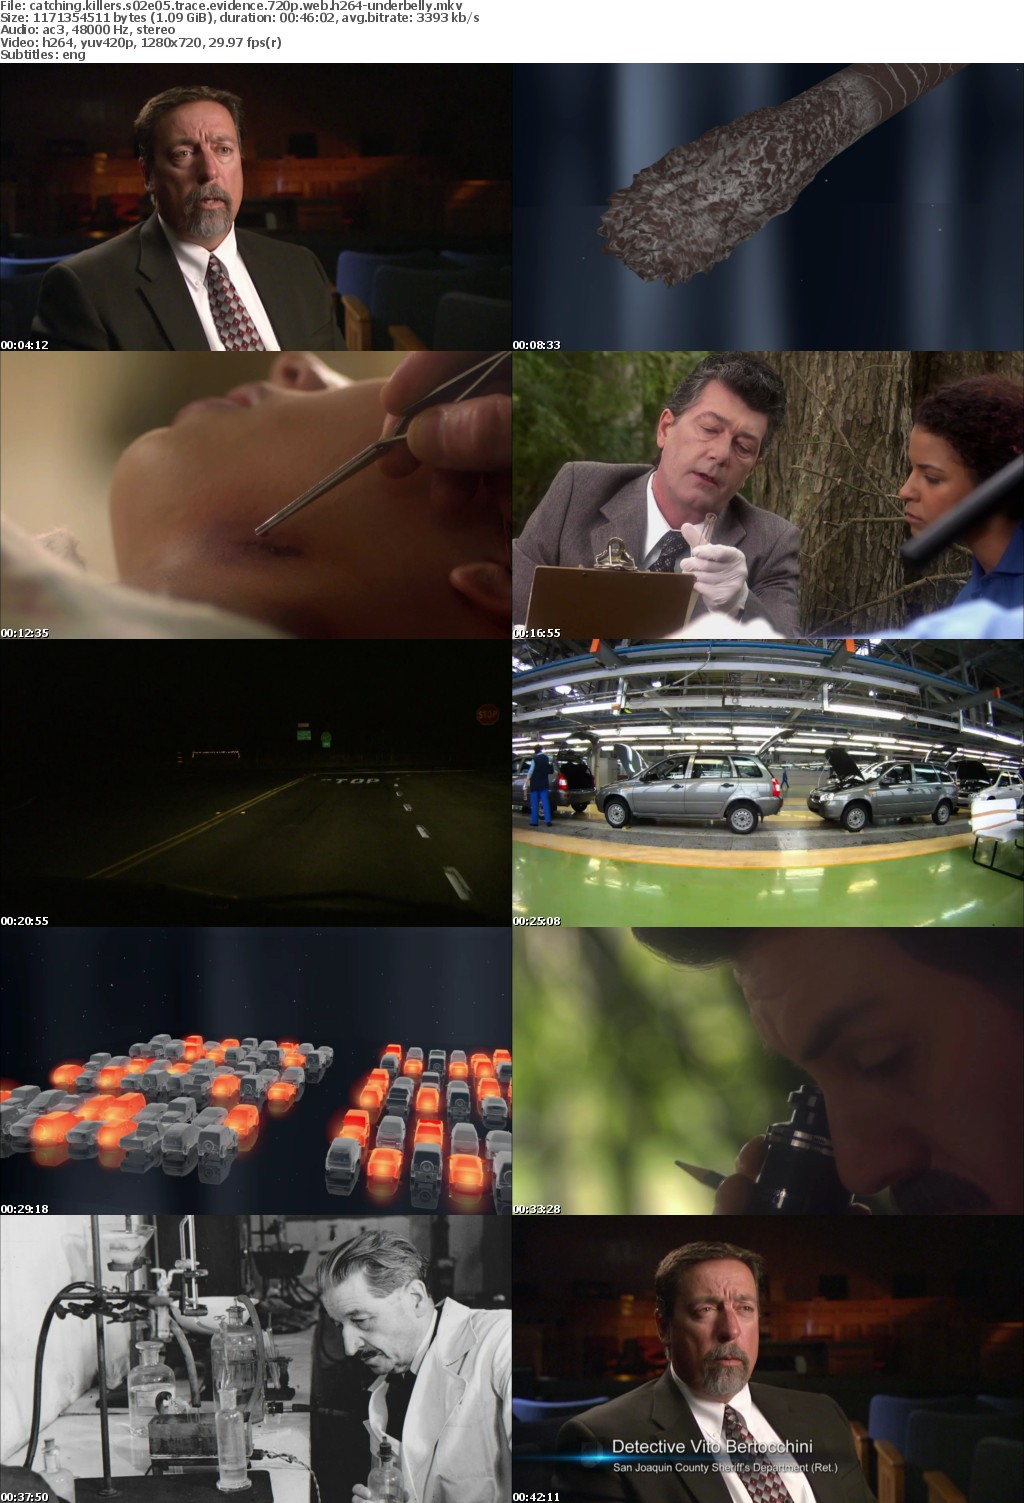 catching killers s02e05 trace evidence 720p web h264-underbelly